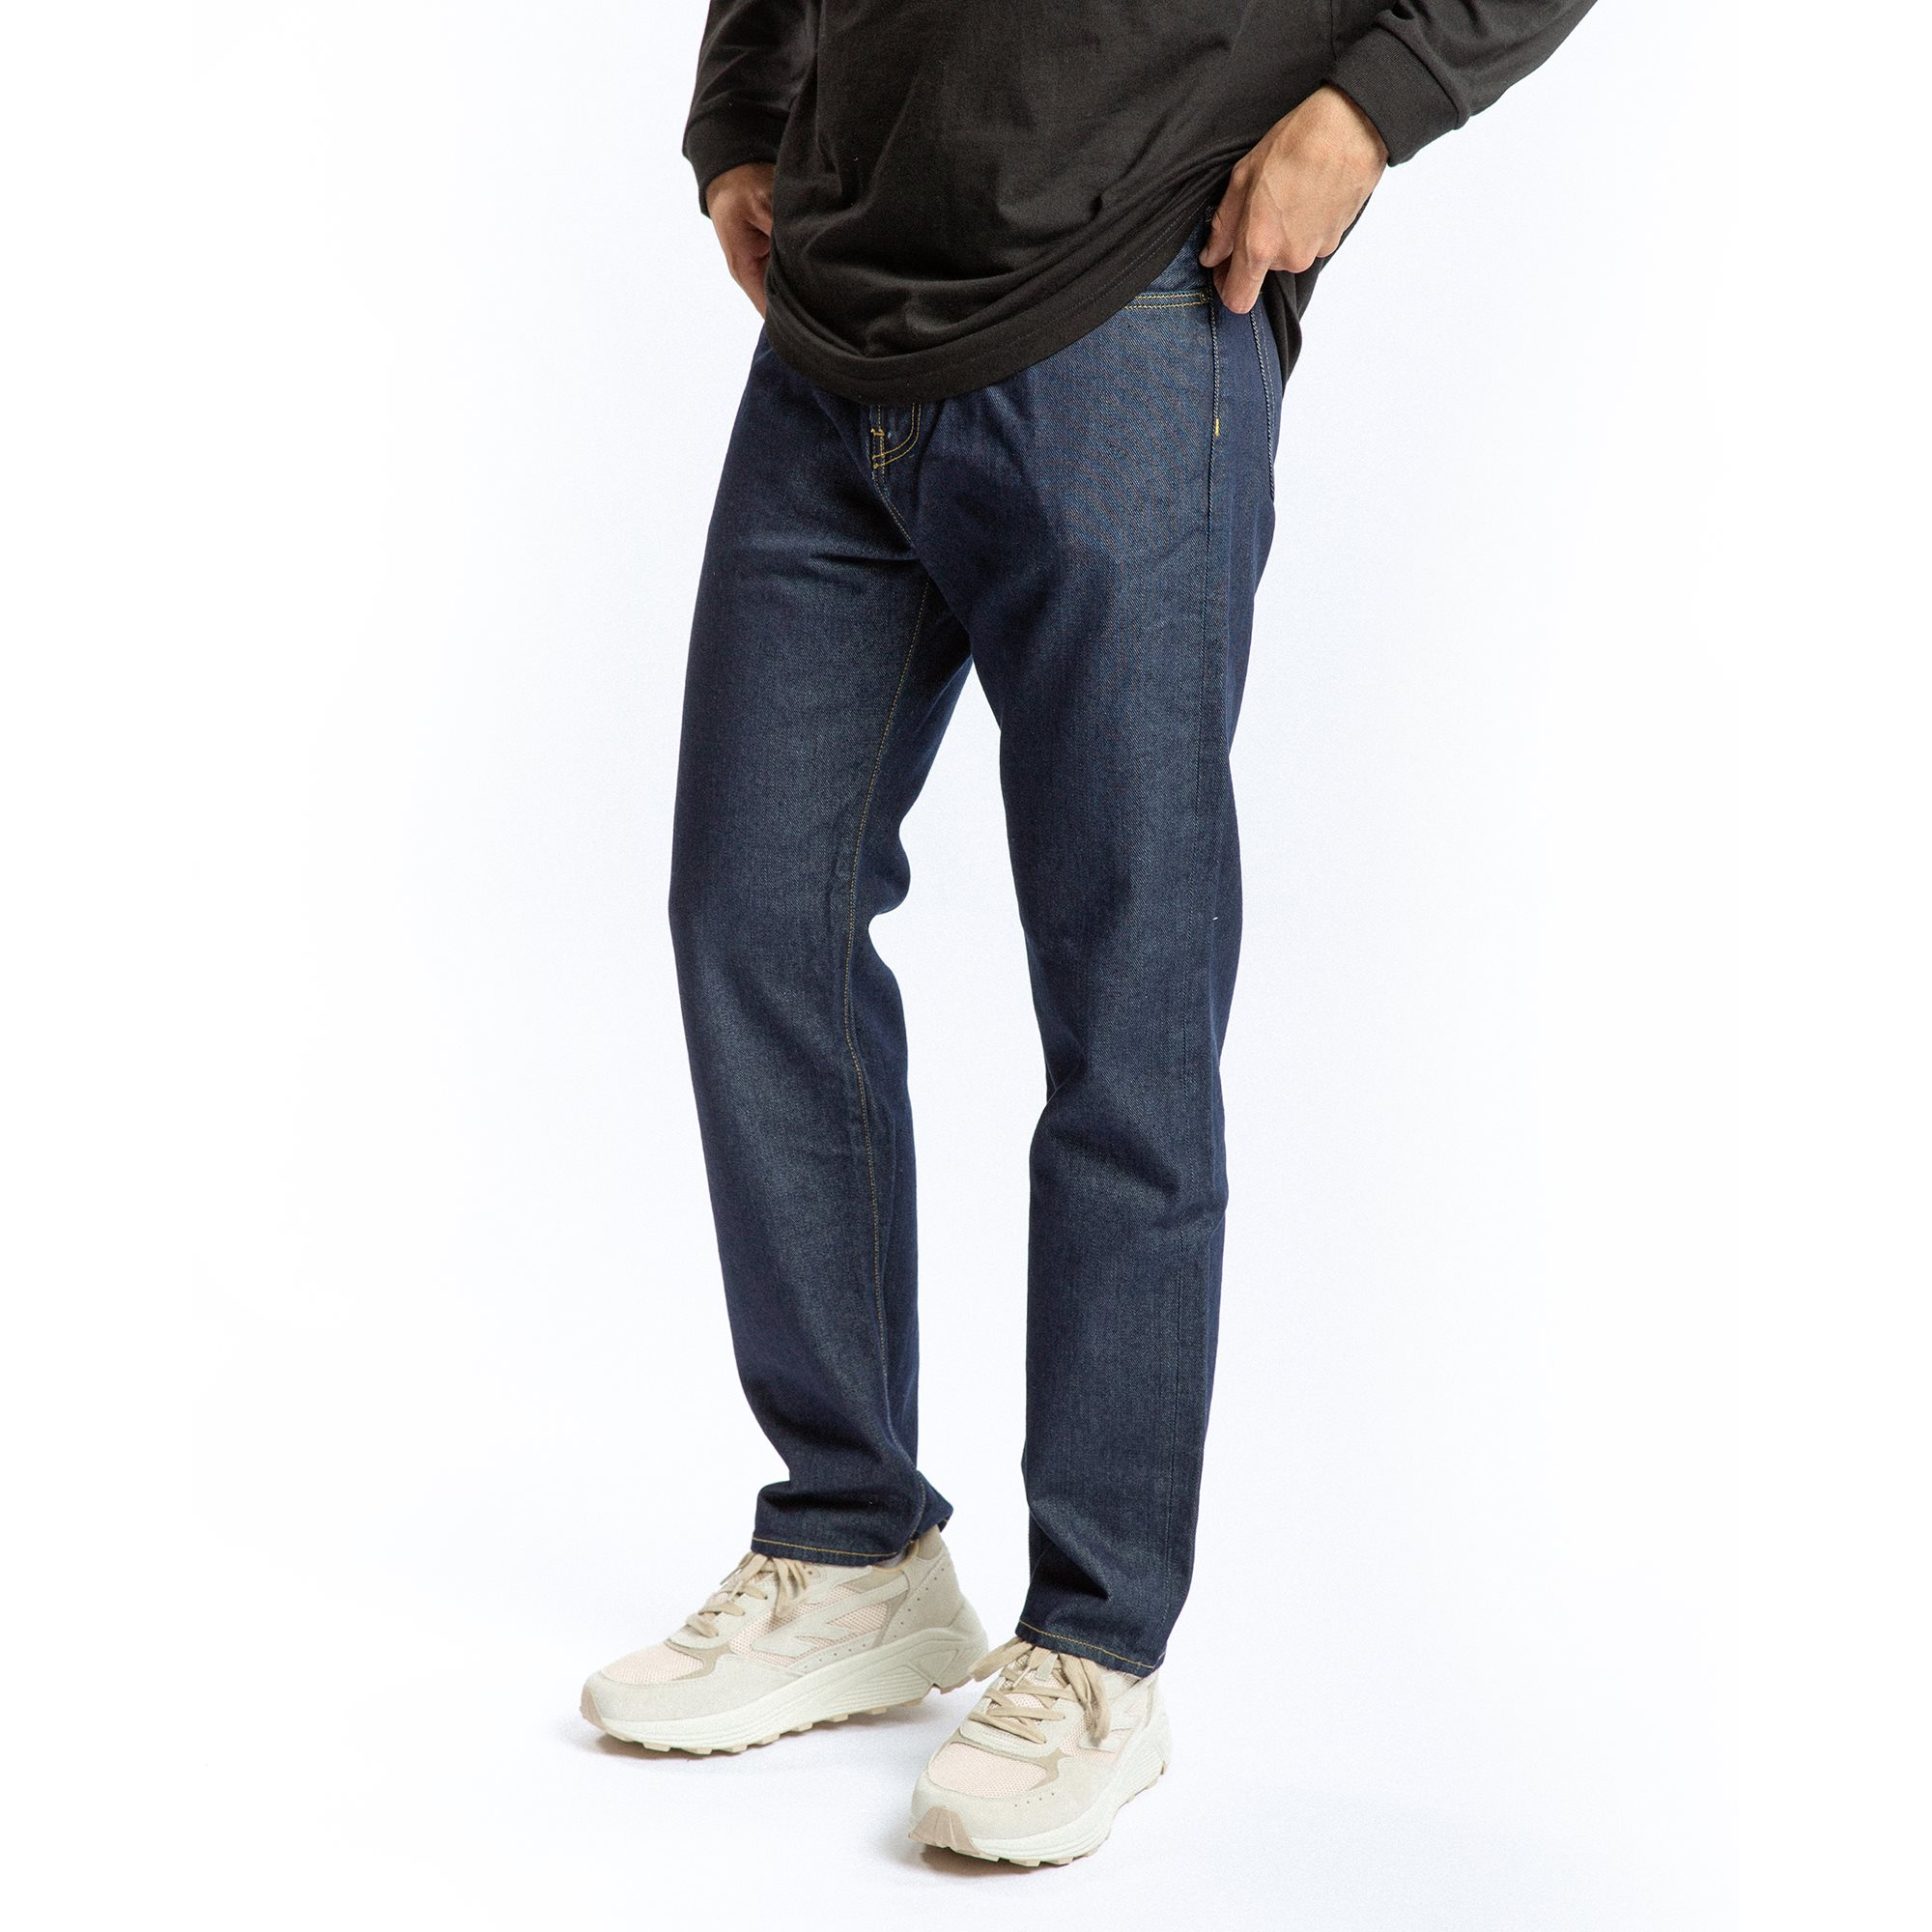 Jeans - Straight fit - Blue